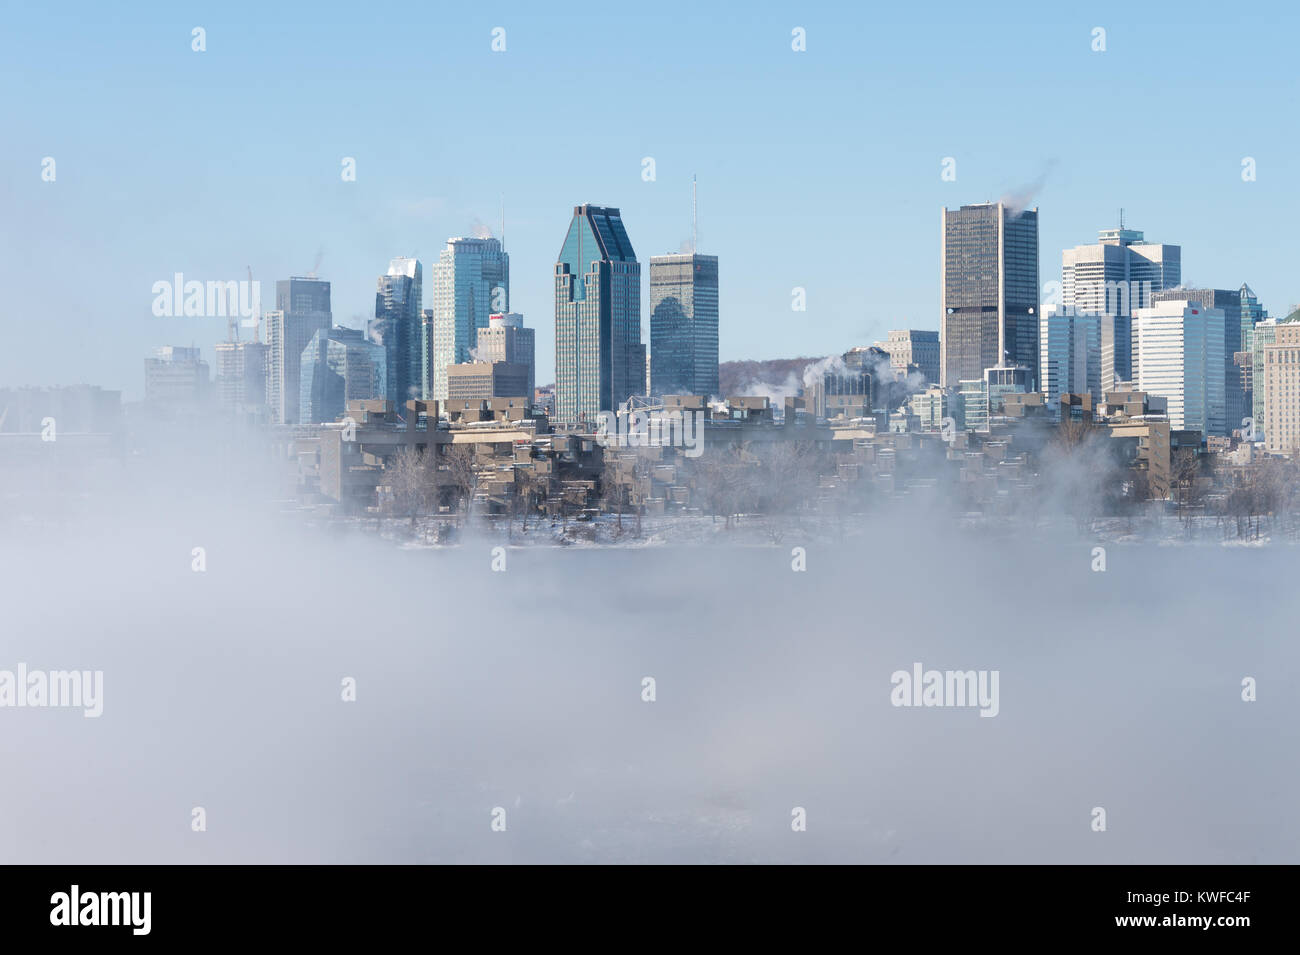 Montreal, CA - 1 January 2018: Montreal Skyline in winter as ice fog rises off the St. Lawrence River - Stock Image